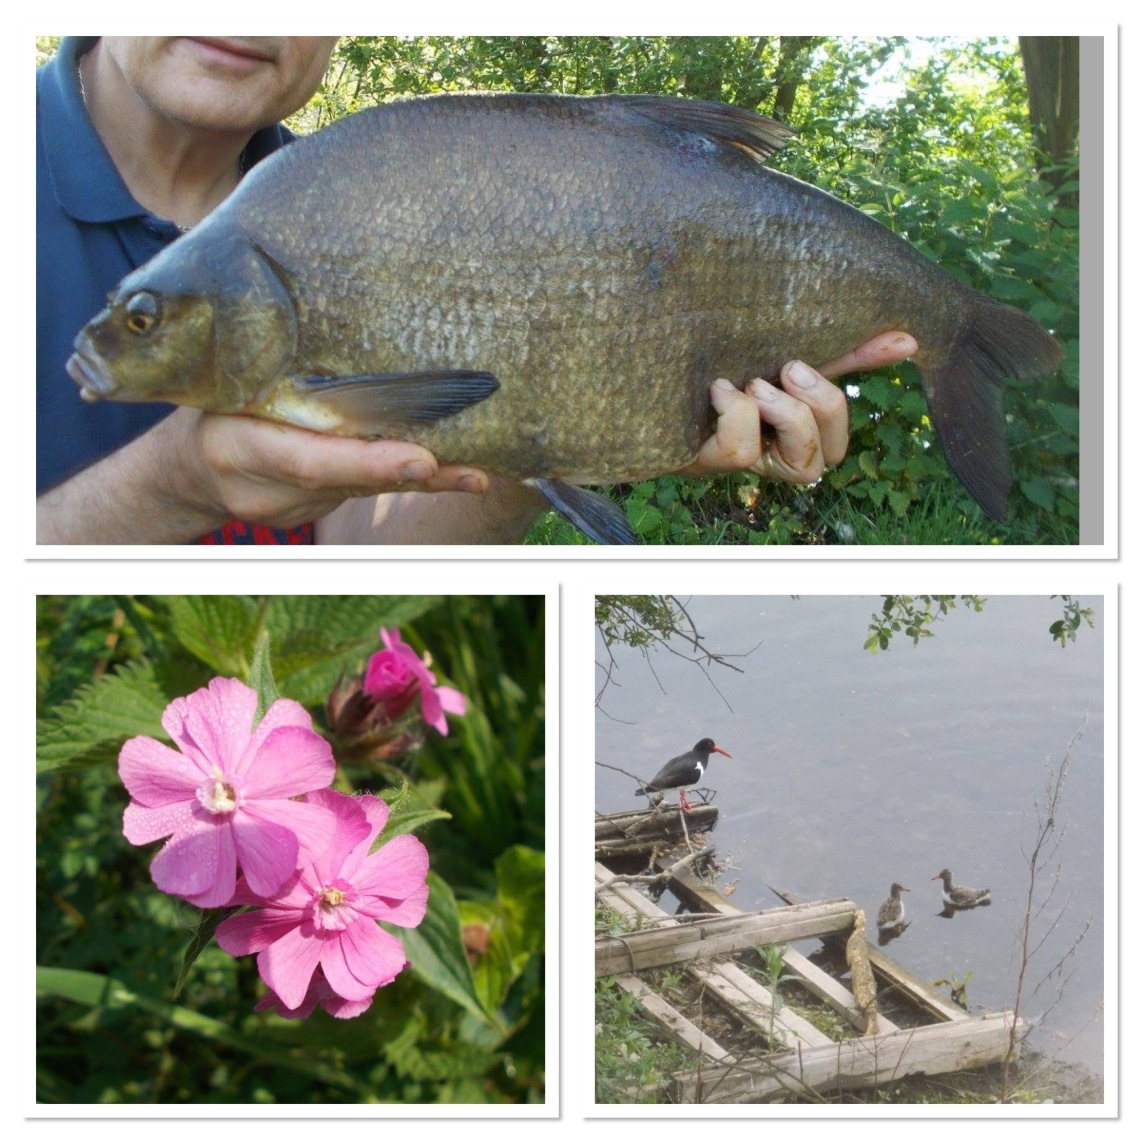 Red campion, oystercatcher and the final bream